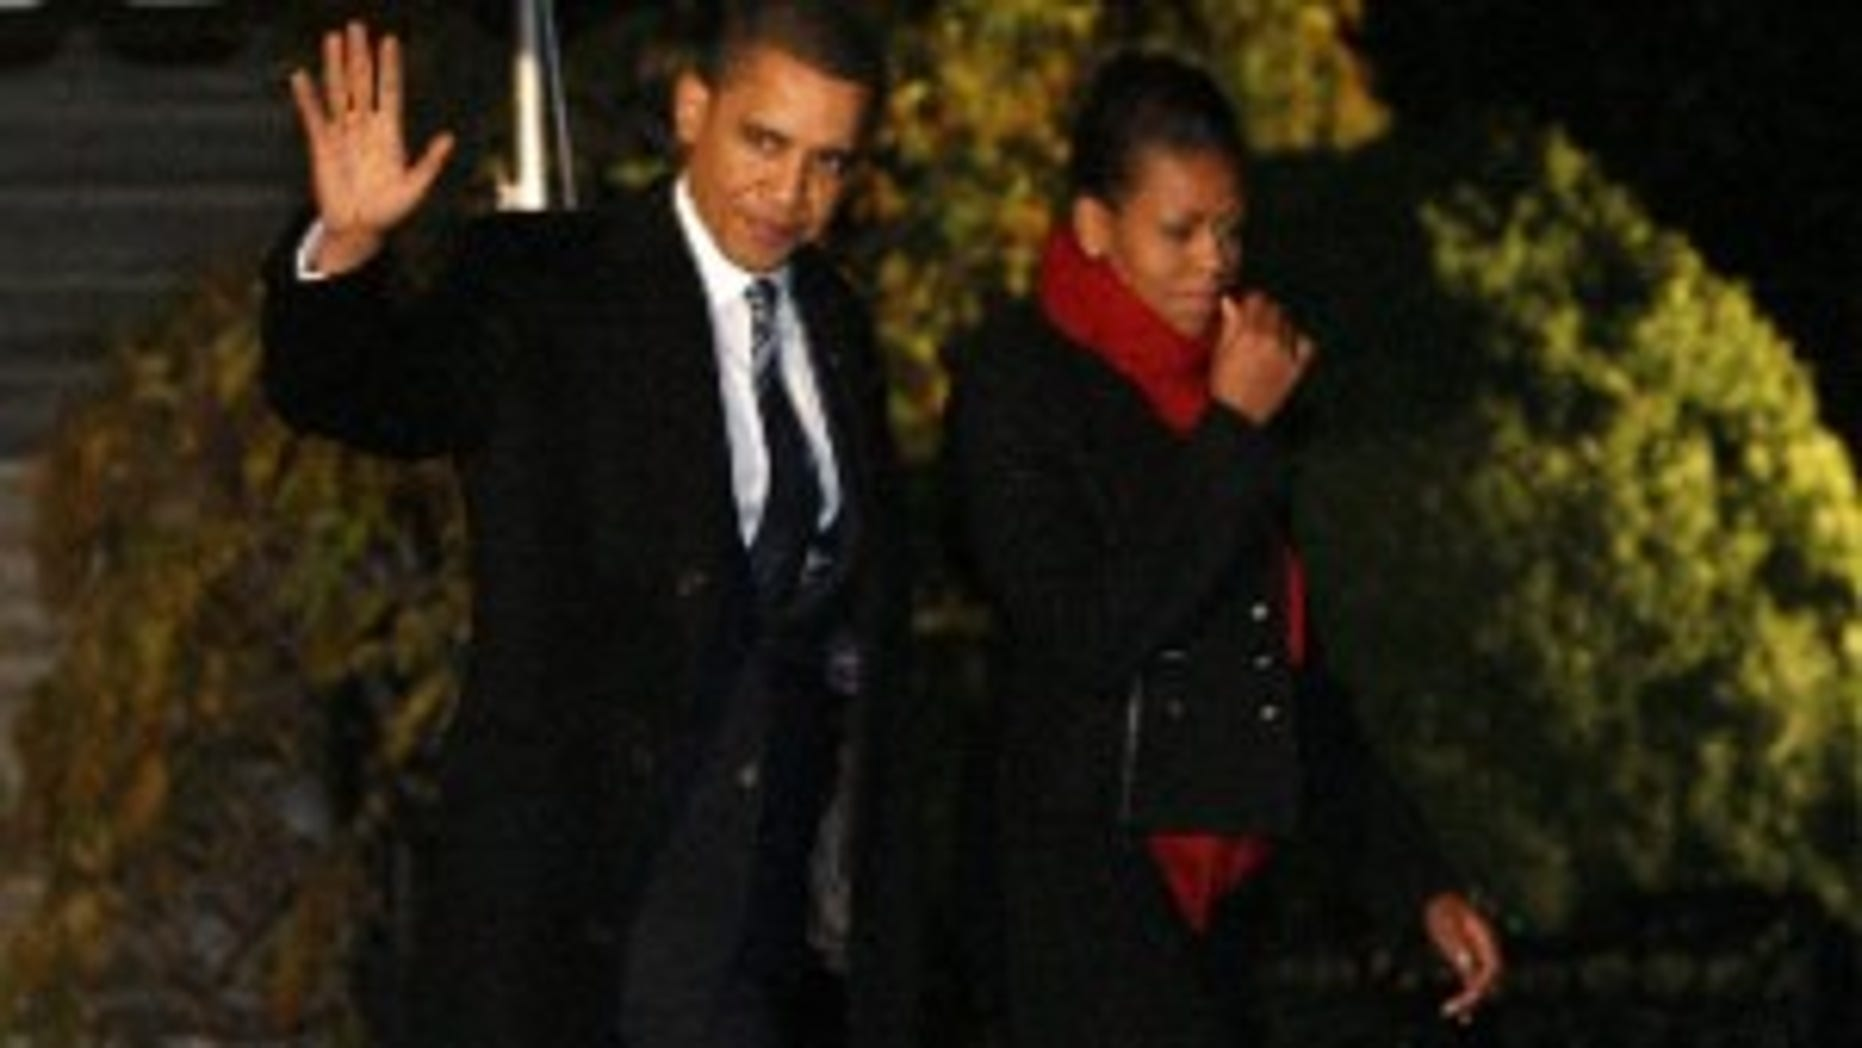 President Barack Obama and first lady Michelle Obama depart the White House in Washington, Wednesday, Dec. 9, 2009, en route to Oslo, Norway, where he will accept the Nobel Peace Prize. (AP Photo/Charles Dharapak)